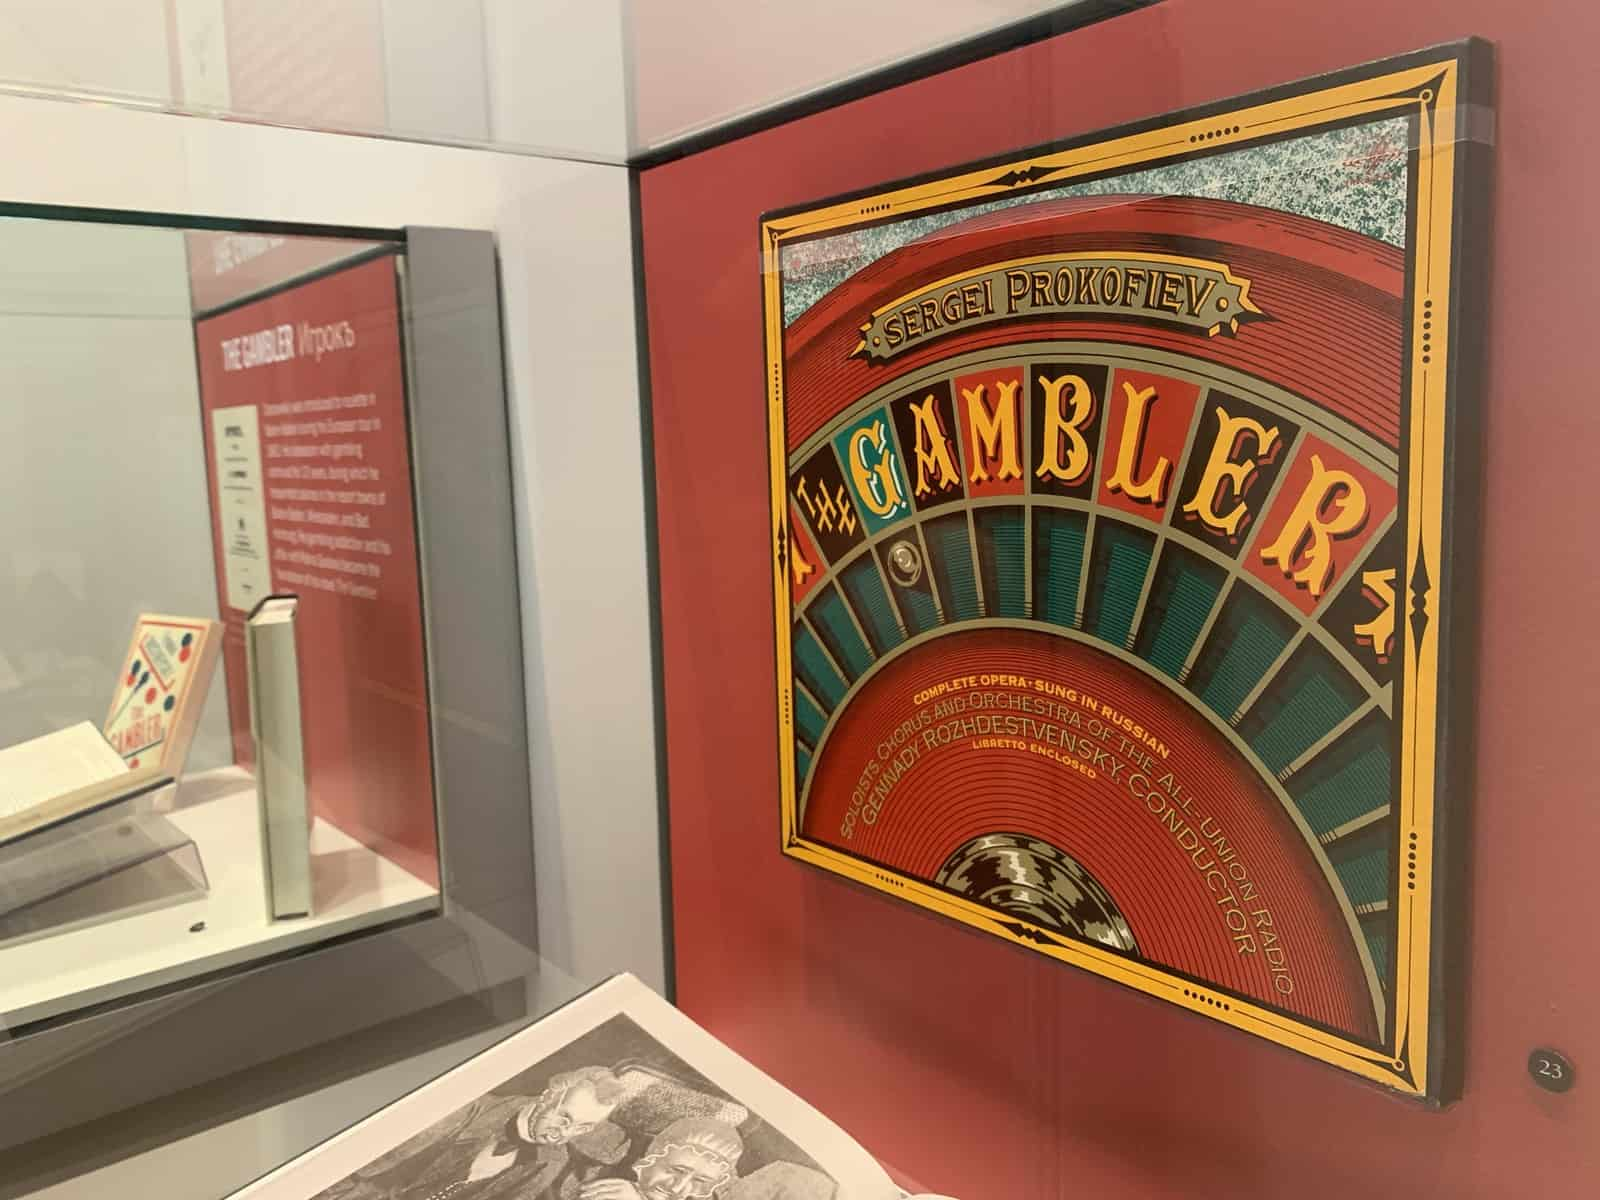 A vinyl record box is mounted to the back of an exhibit case. It says The Gambler, and is from the Prokofiev opera. The design features a roulette table.